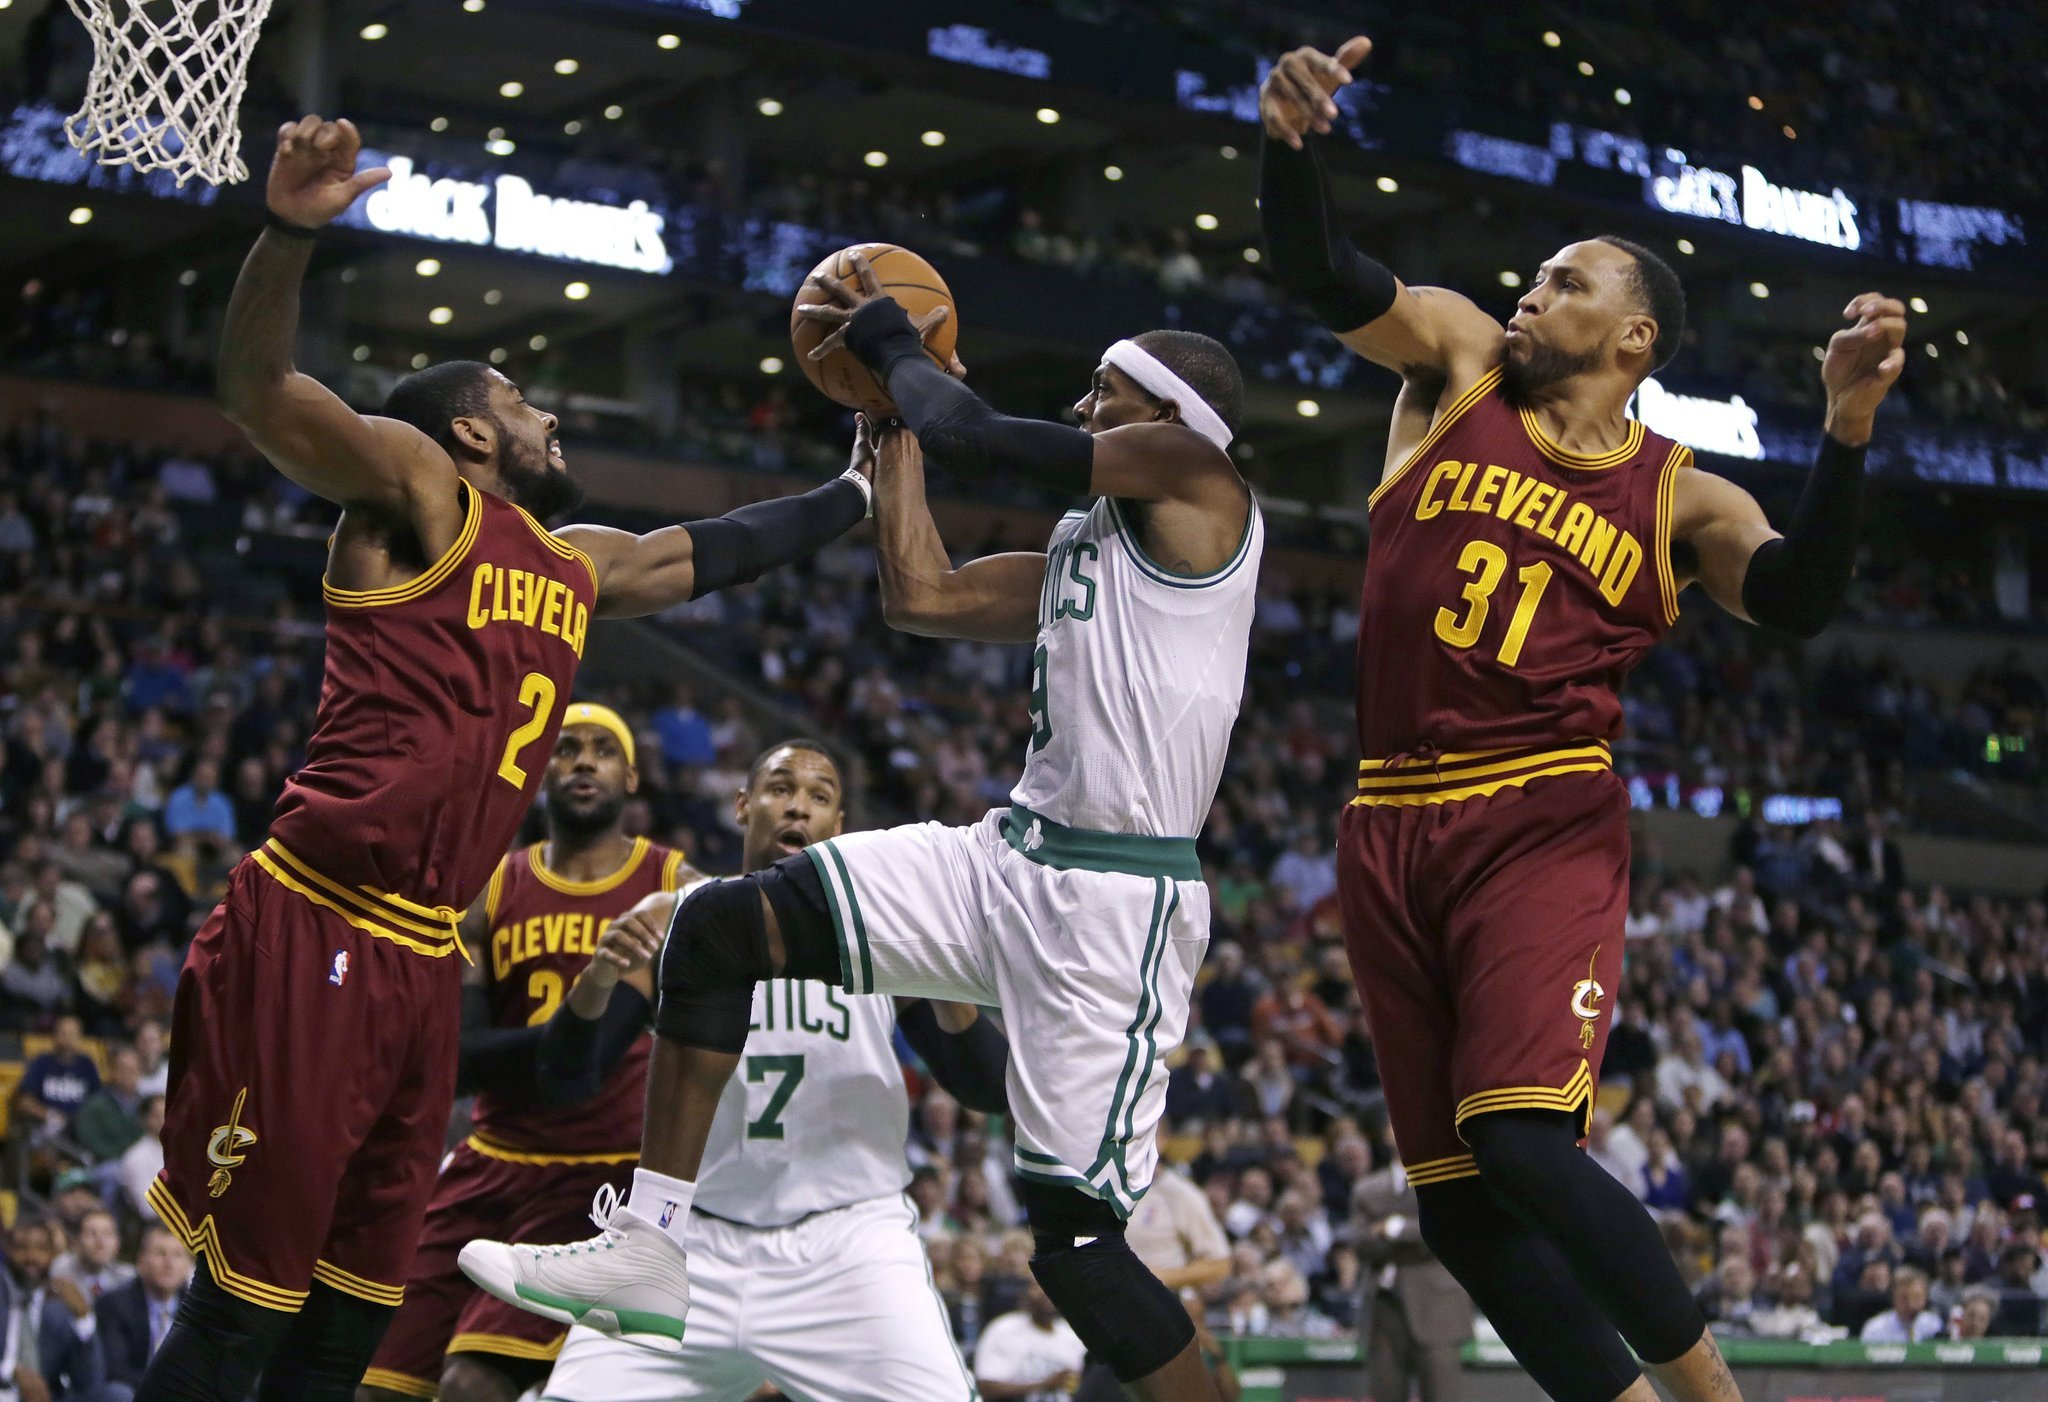 Boston Celtics VS Cleveland Cavaliers  BETTING TIPS (20-05-2017)